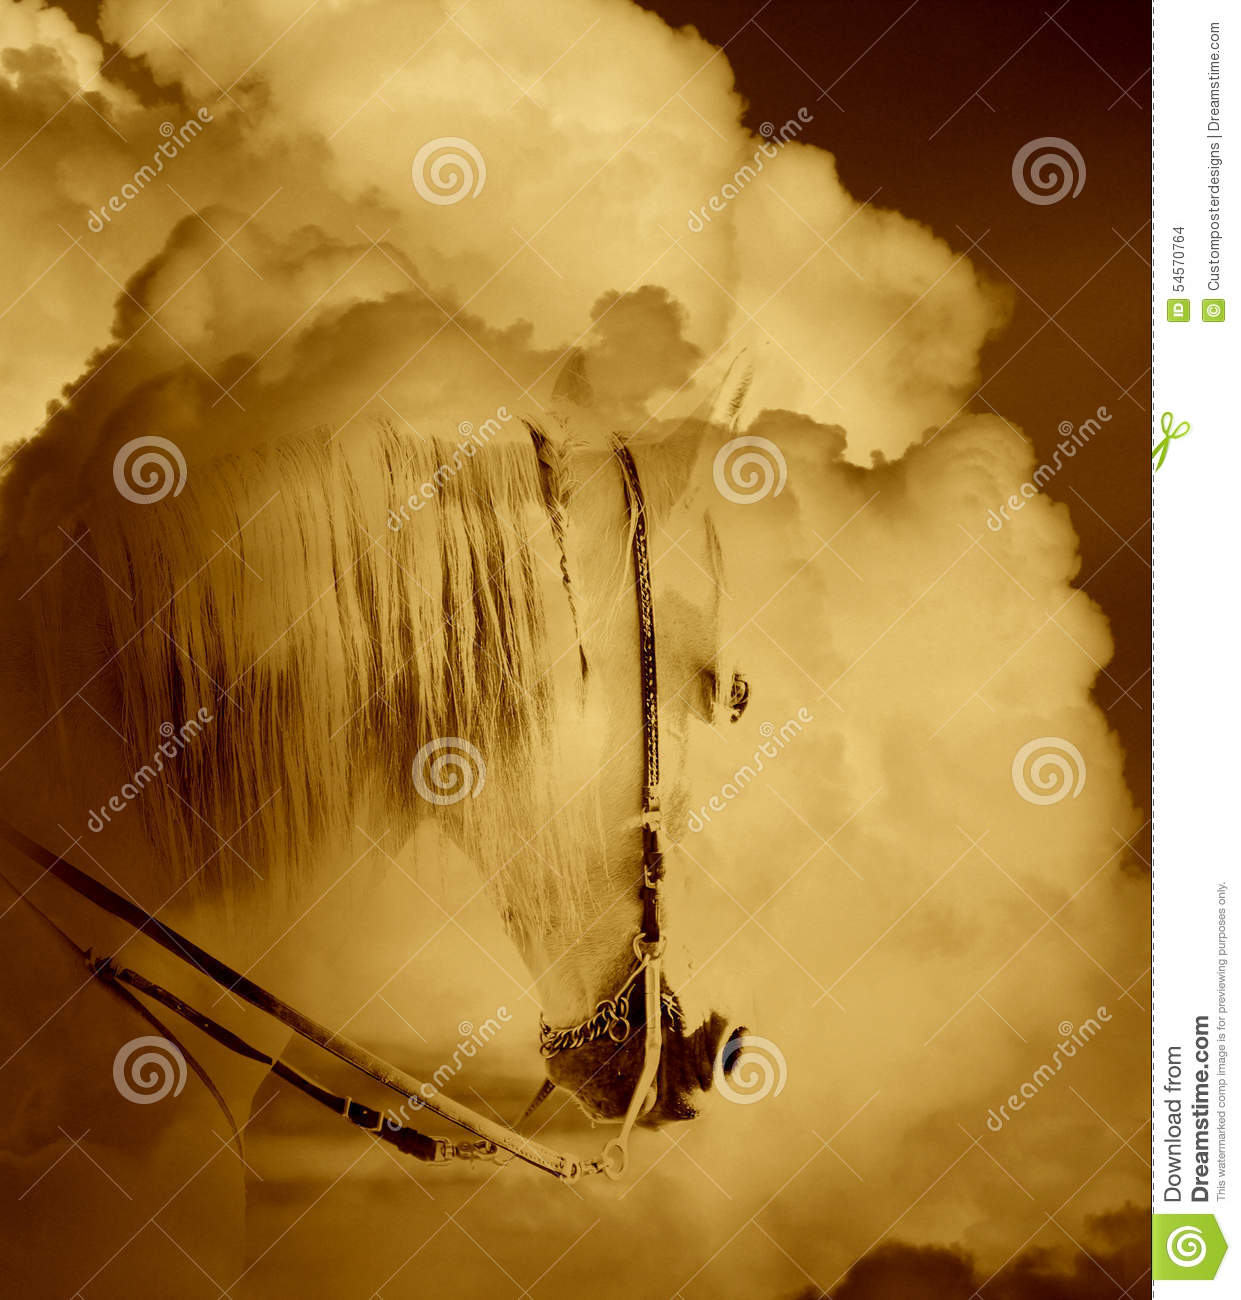 Download An Abstract Image Of A White Horse In The Clouds. Stock Photo - Image of magical, large: 54570764